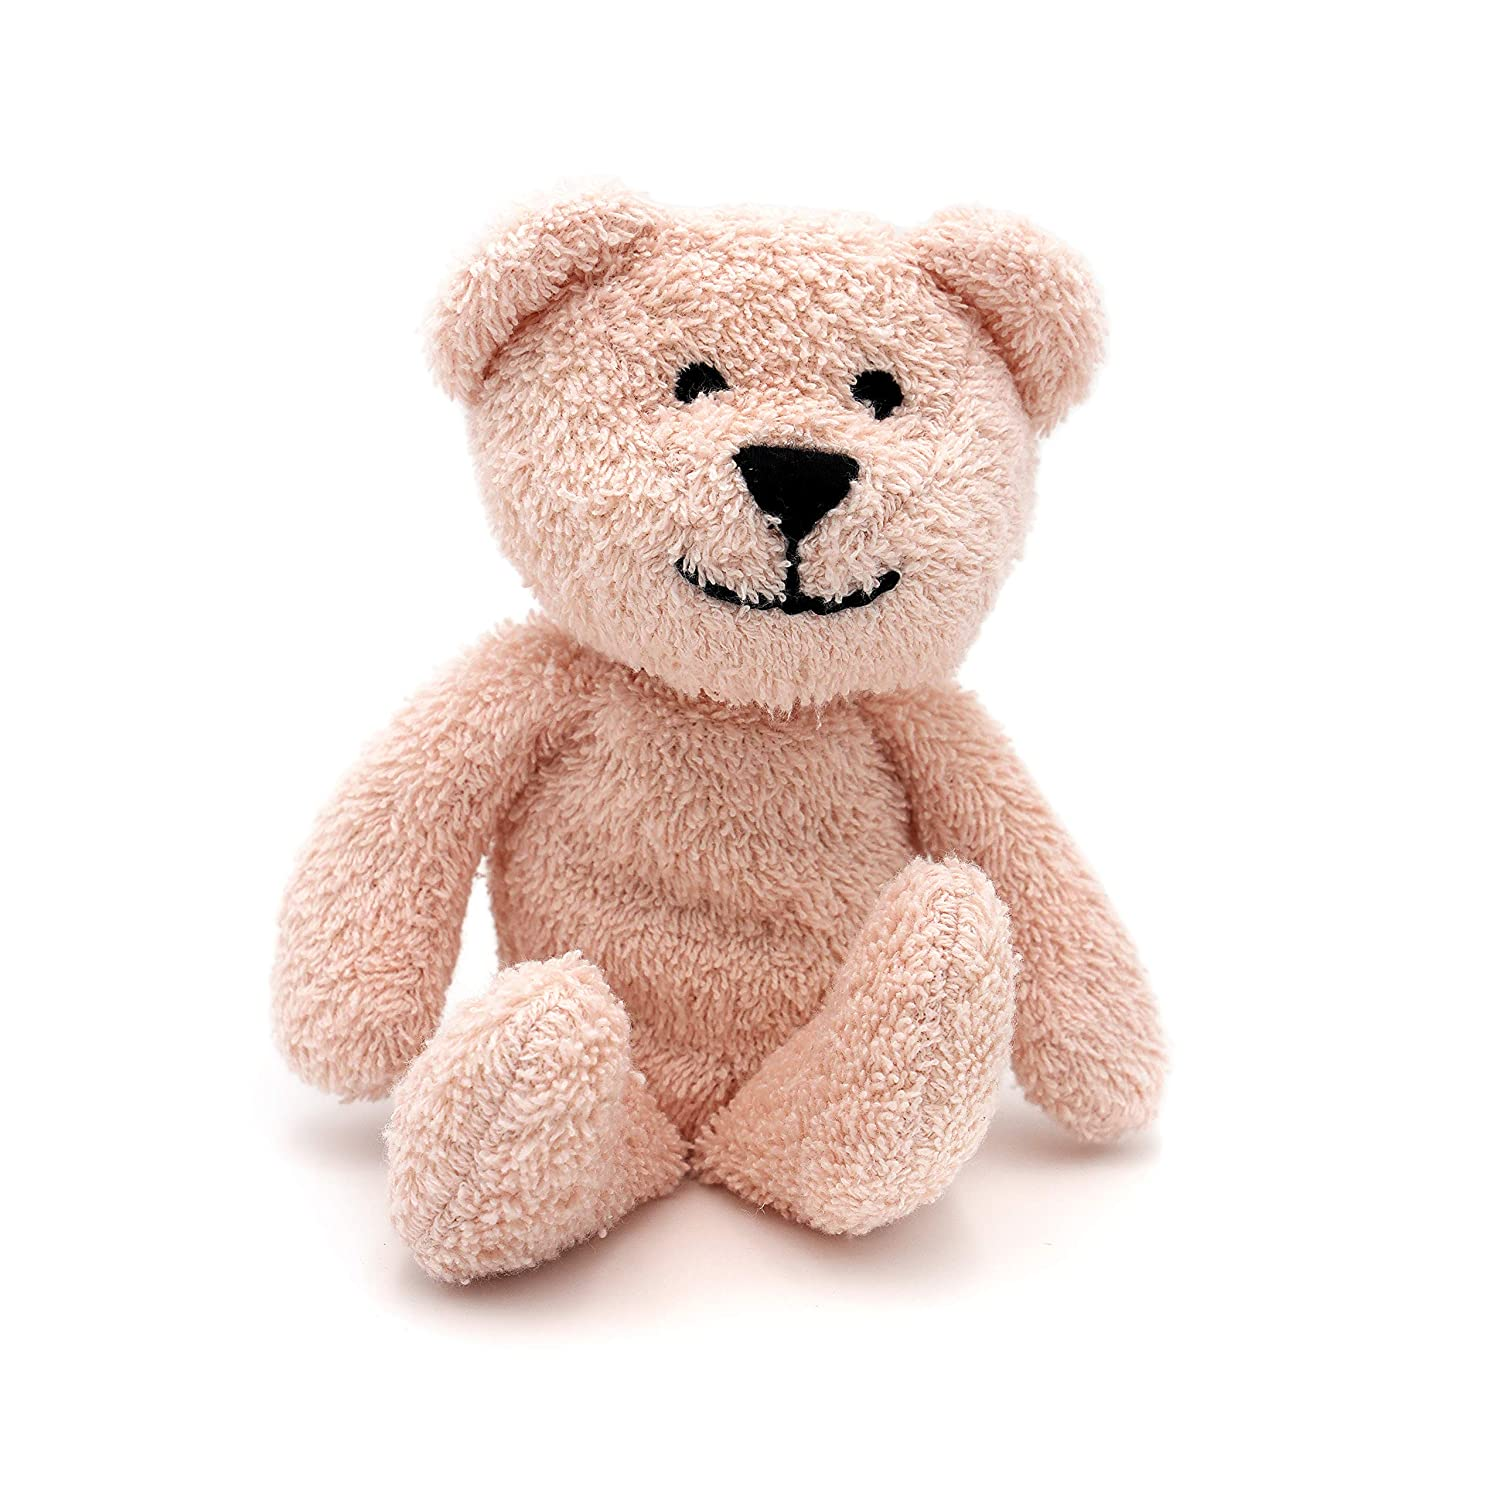 Thermal-Aid Zoo — Mini Bella The Pink Bear — Kids Hot and Cold Pain Relief Boo Boo Tool — Heating Pad Microwavable Stuffed Animal and Cooling Pad — Easy Wash, Natural Sleep Aid — Pregnancy Must-Haves